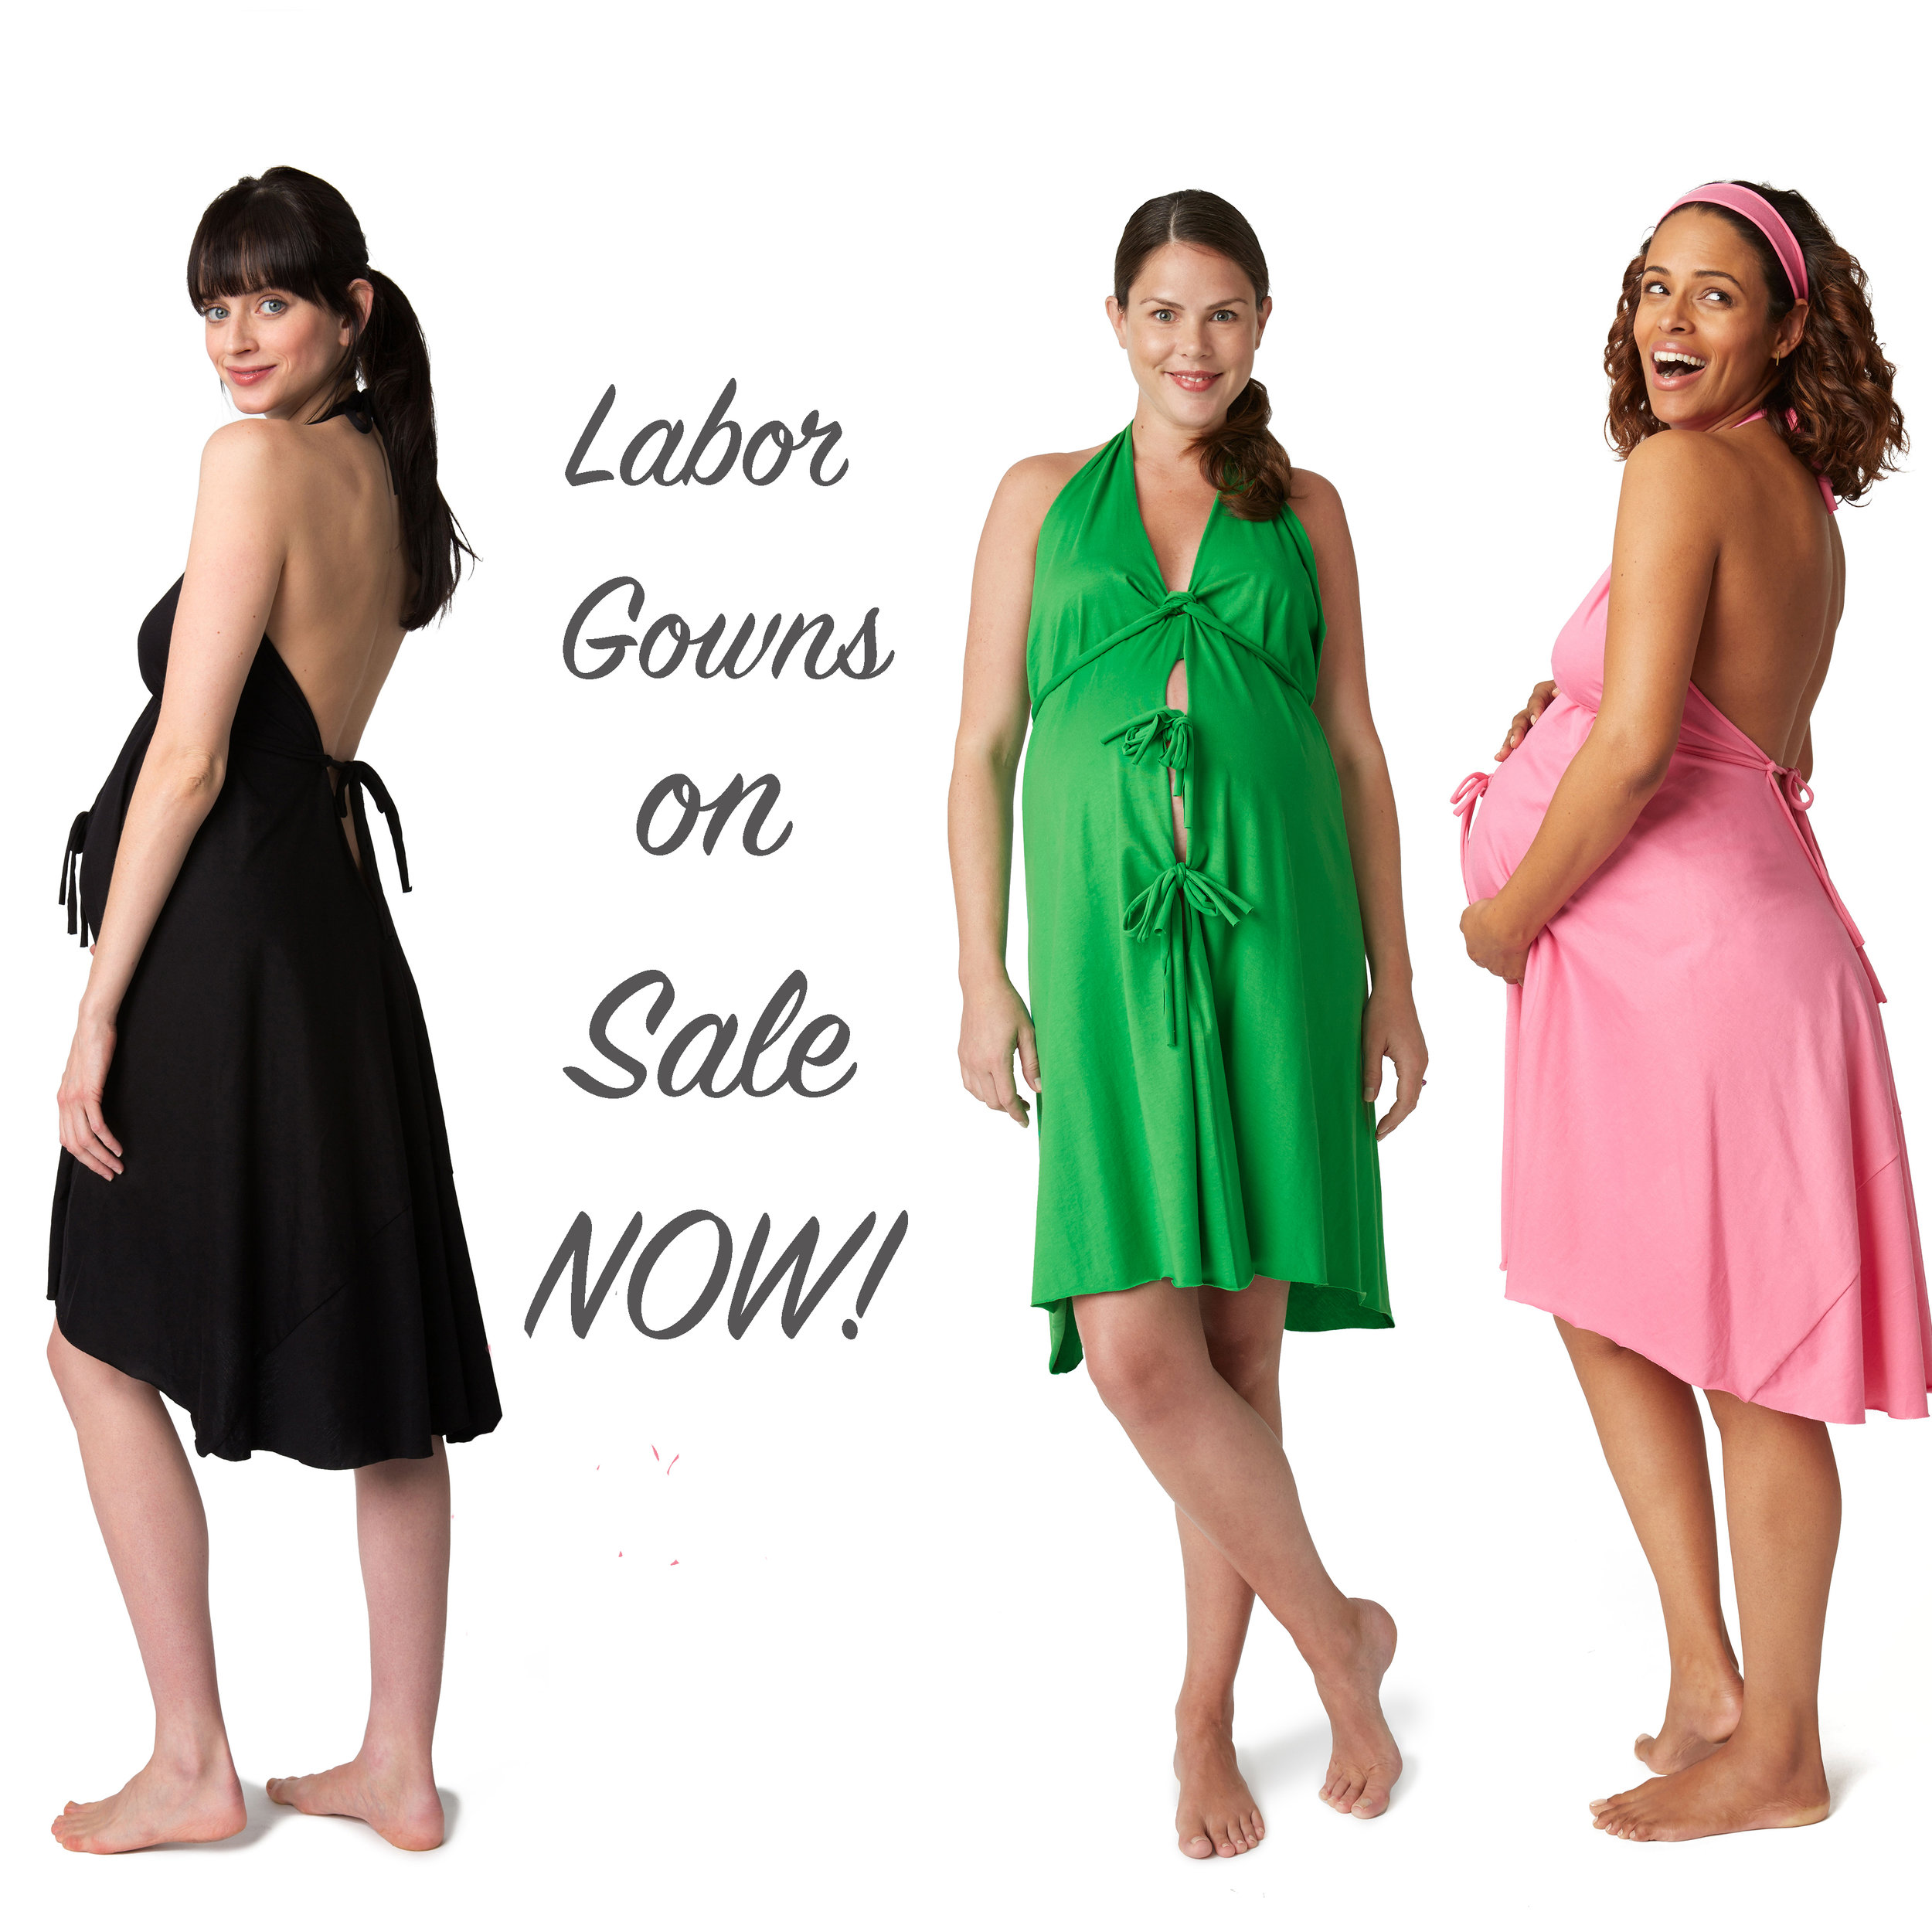 original labor gown sale (2).jpg